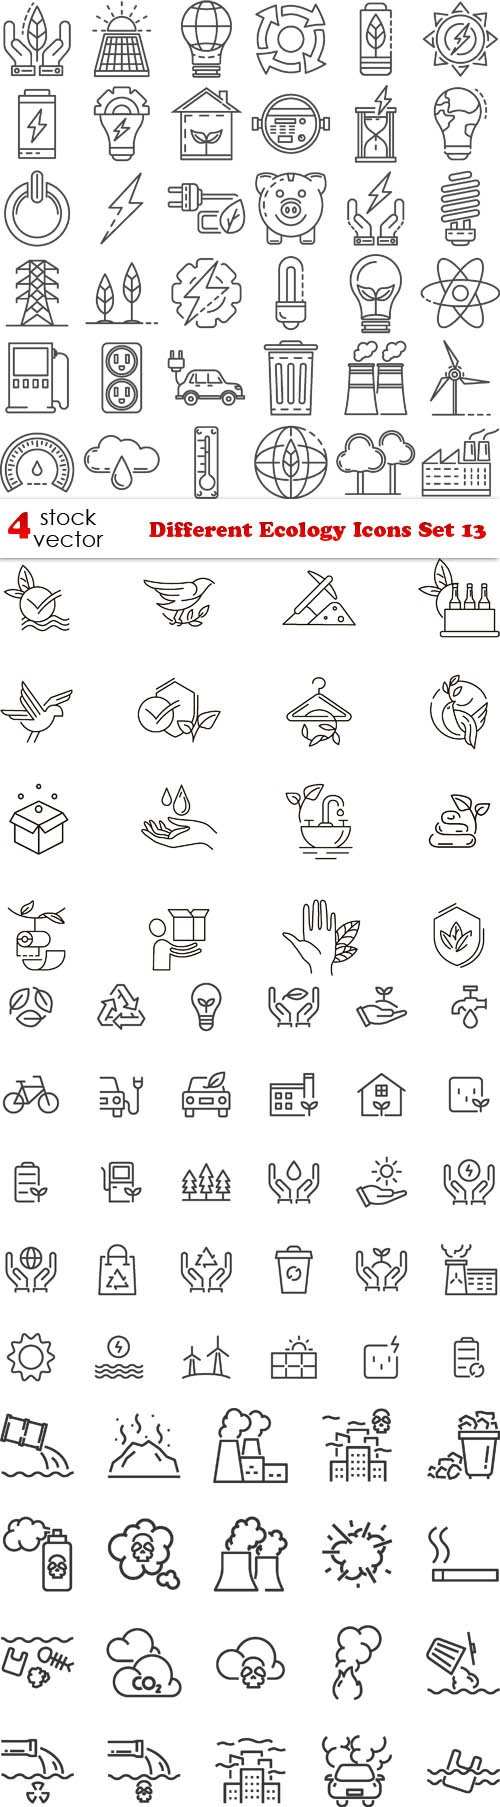 Vectors - Different Ecology Icons Set 13